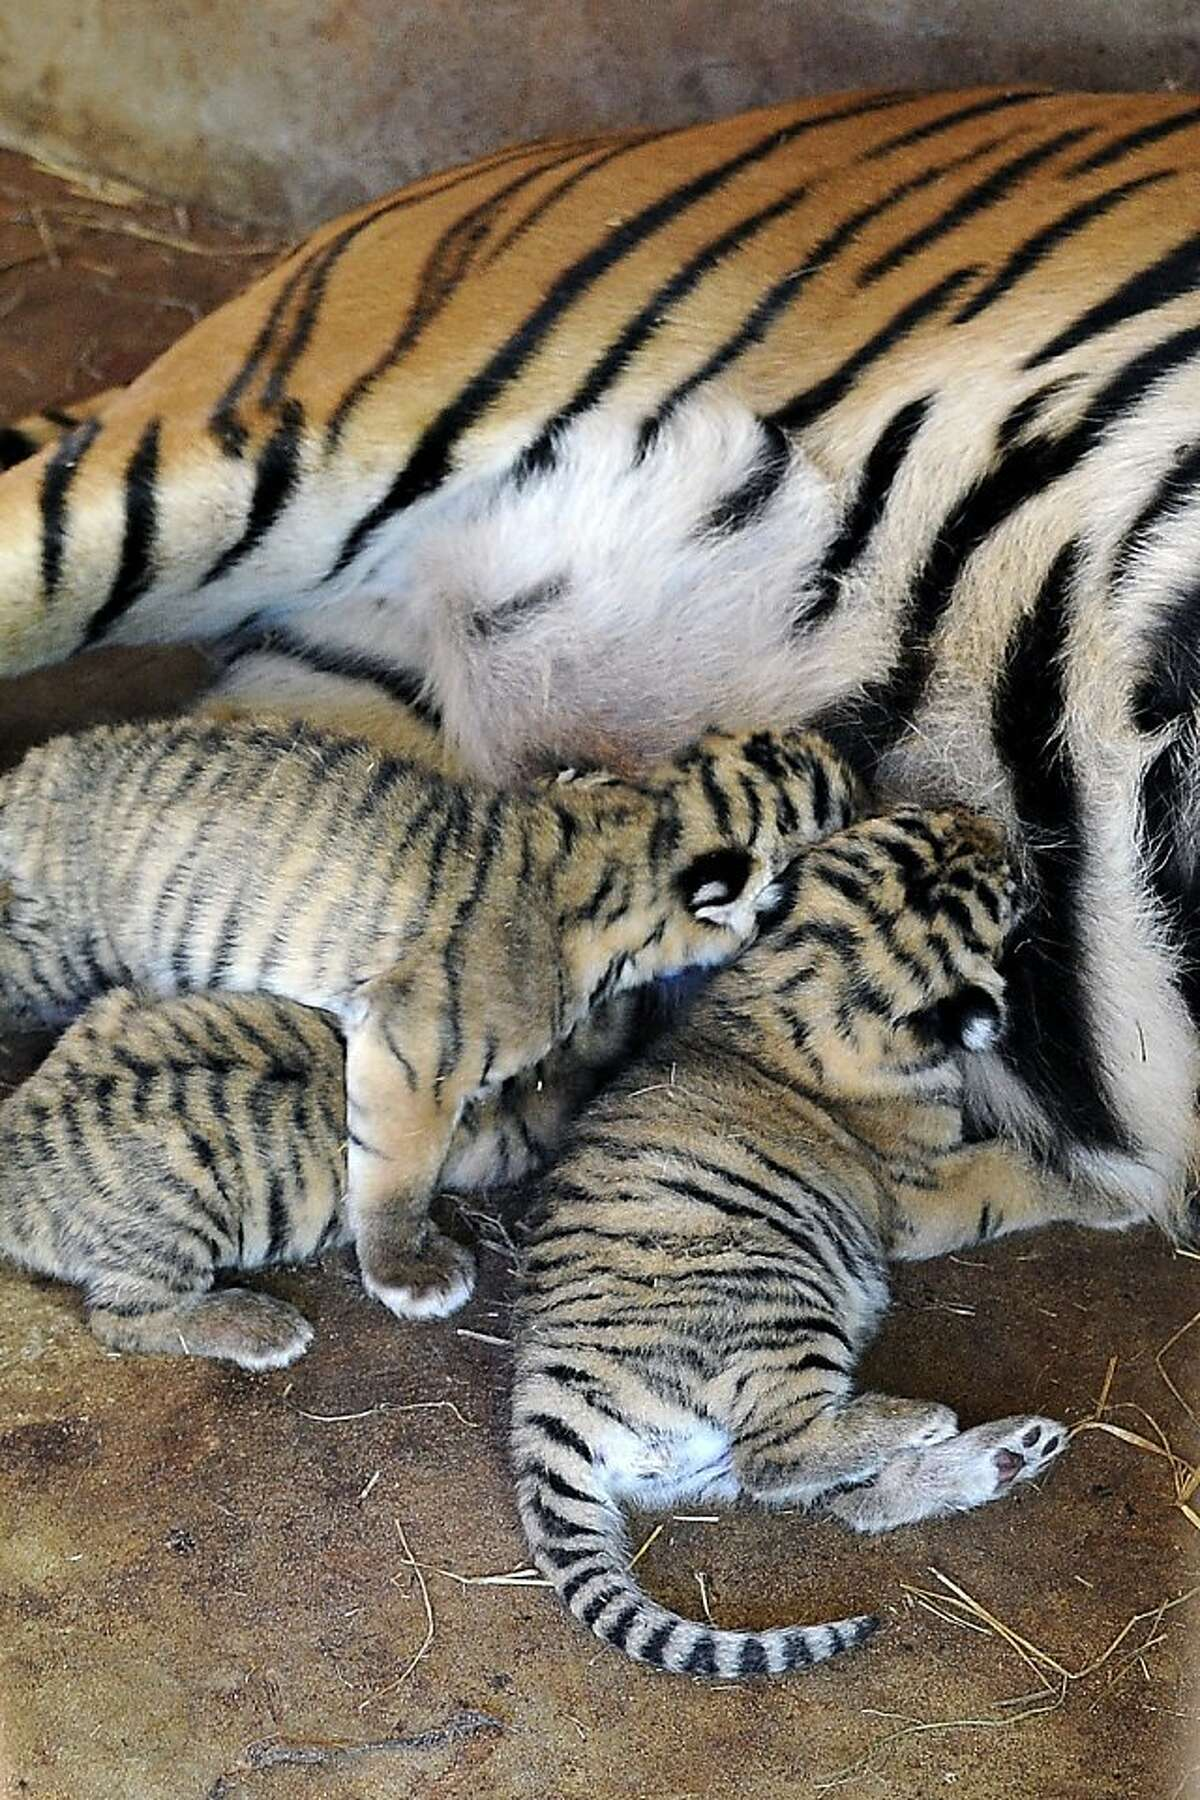 Getting trampled is the price a cub pays for breakfast at the zoo in Asuncion, Paraguay. The baby Bengals were born last week to tigers seized last year from a circus attempting to travel to Argentina without permits.